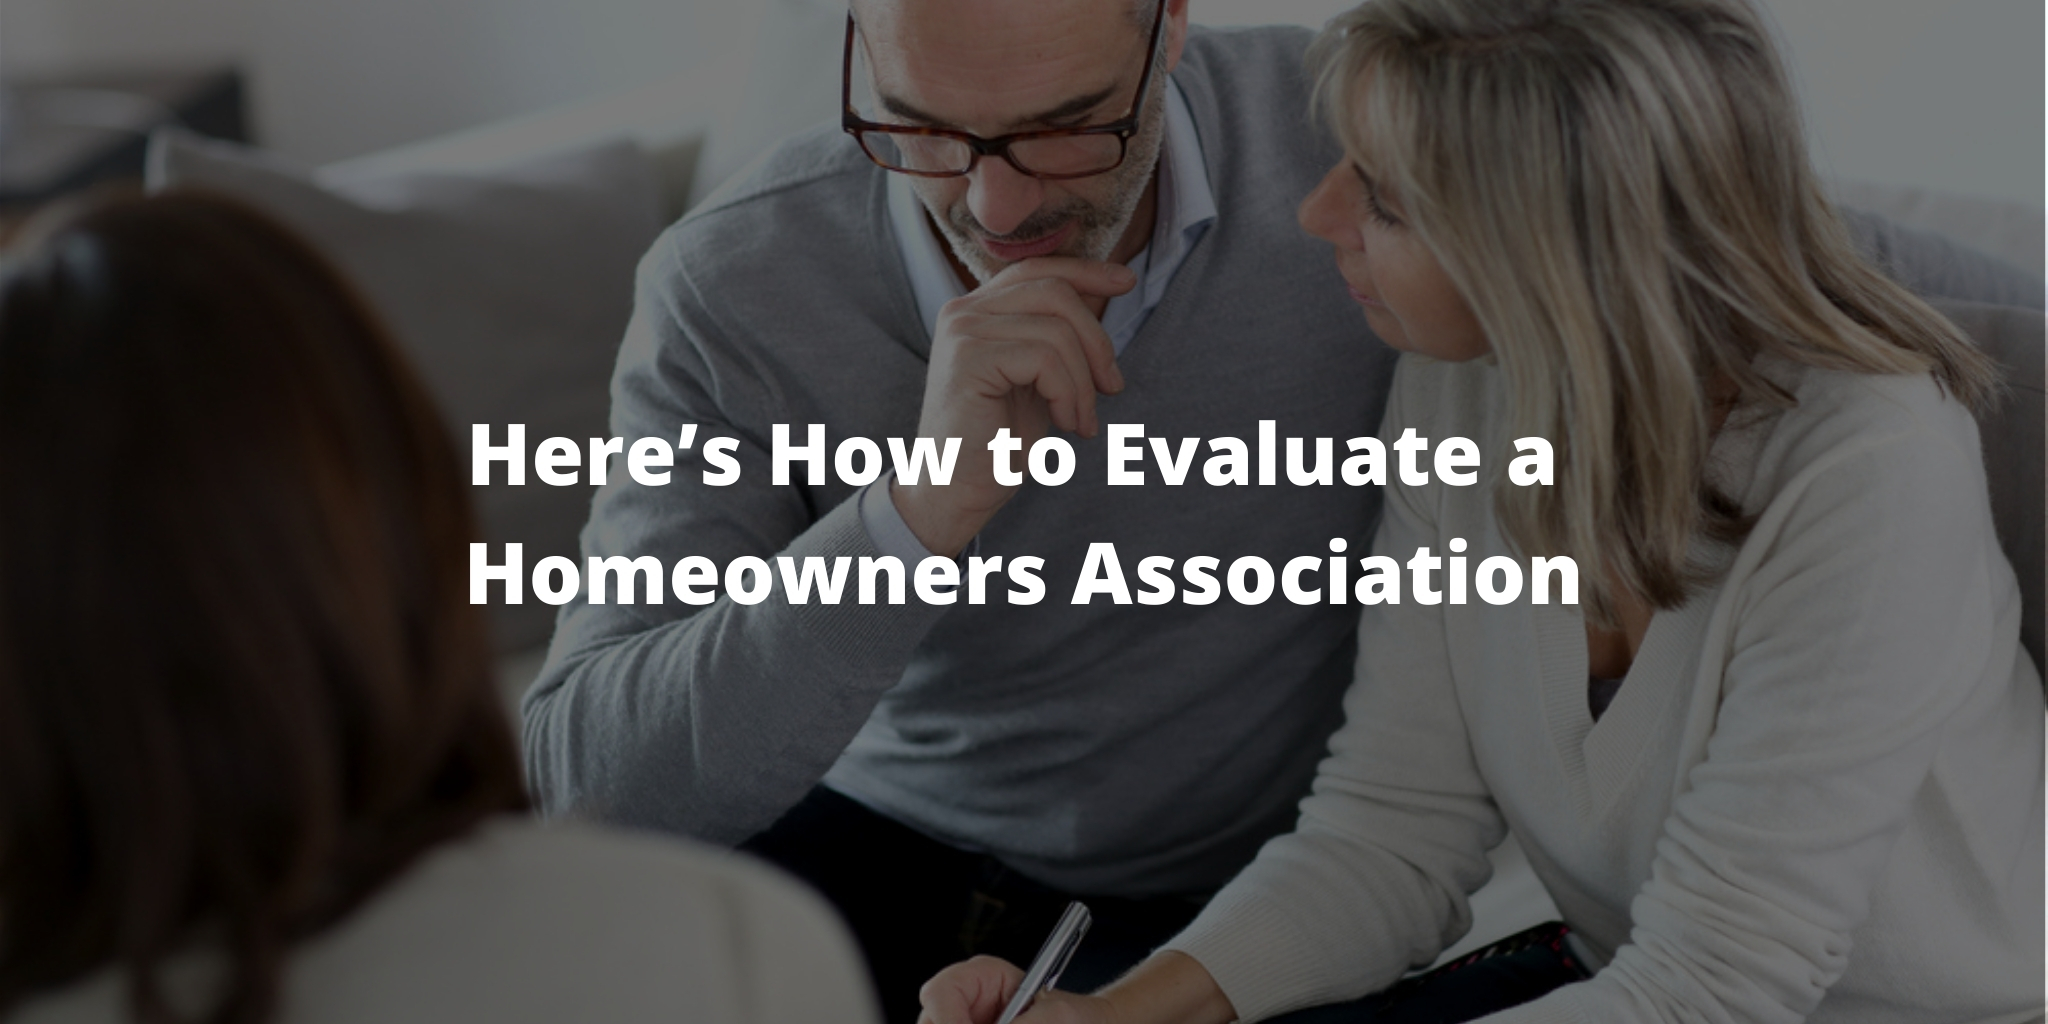 Downsizing? Here's How to Evaluate a Homeowners Association